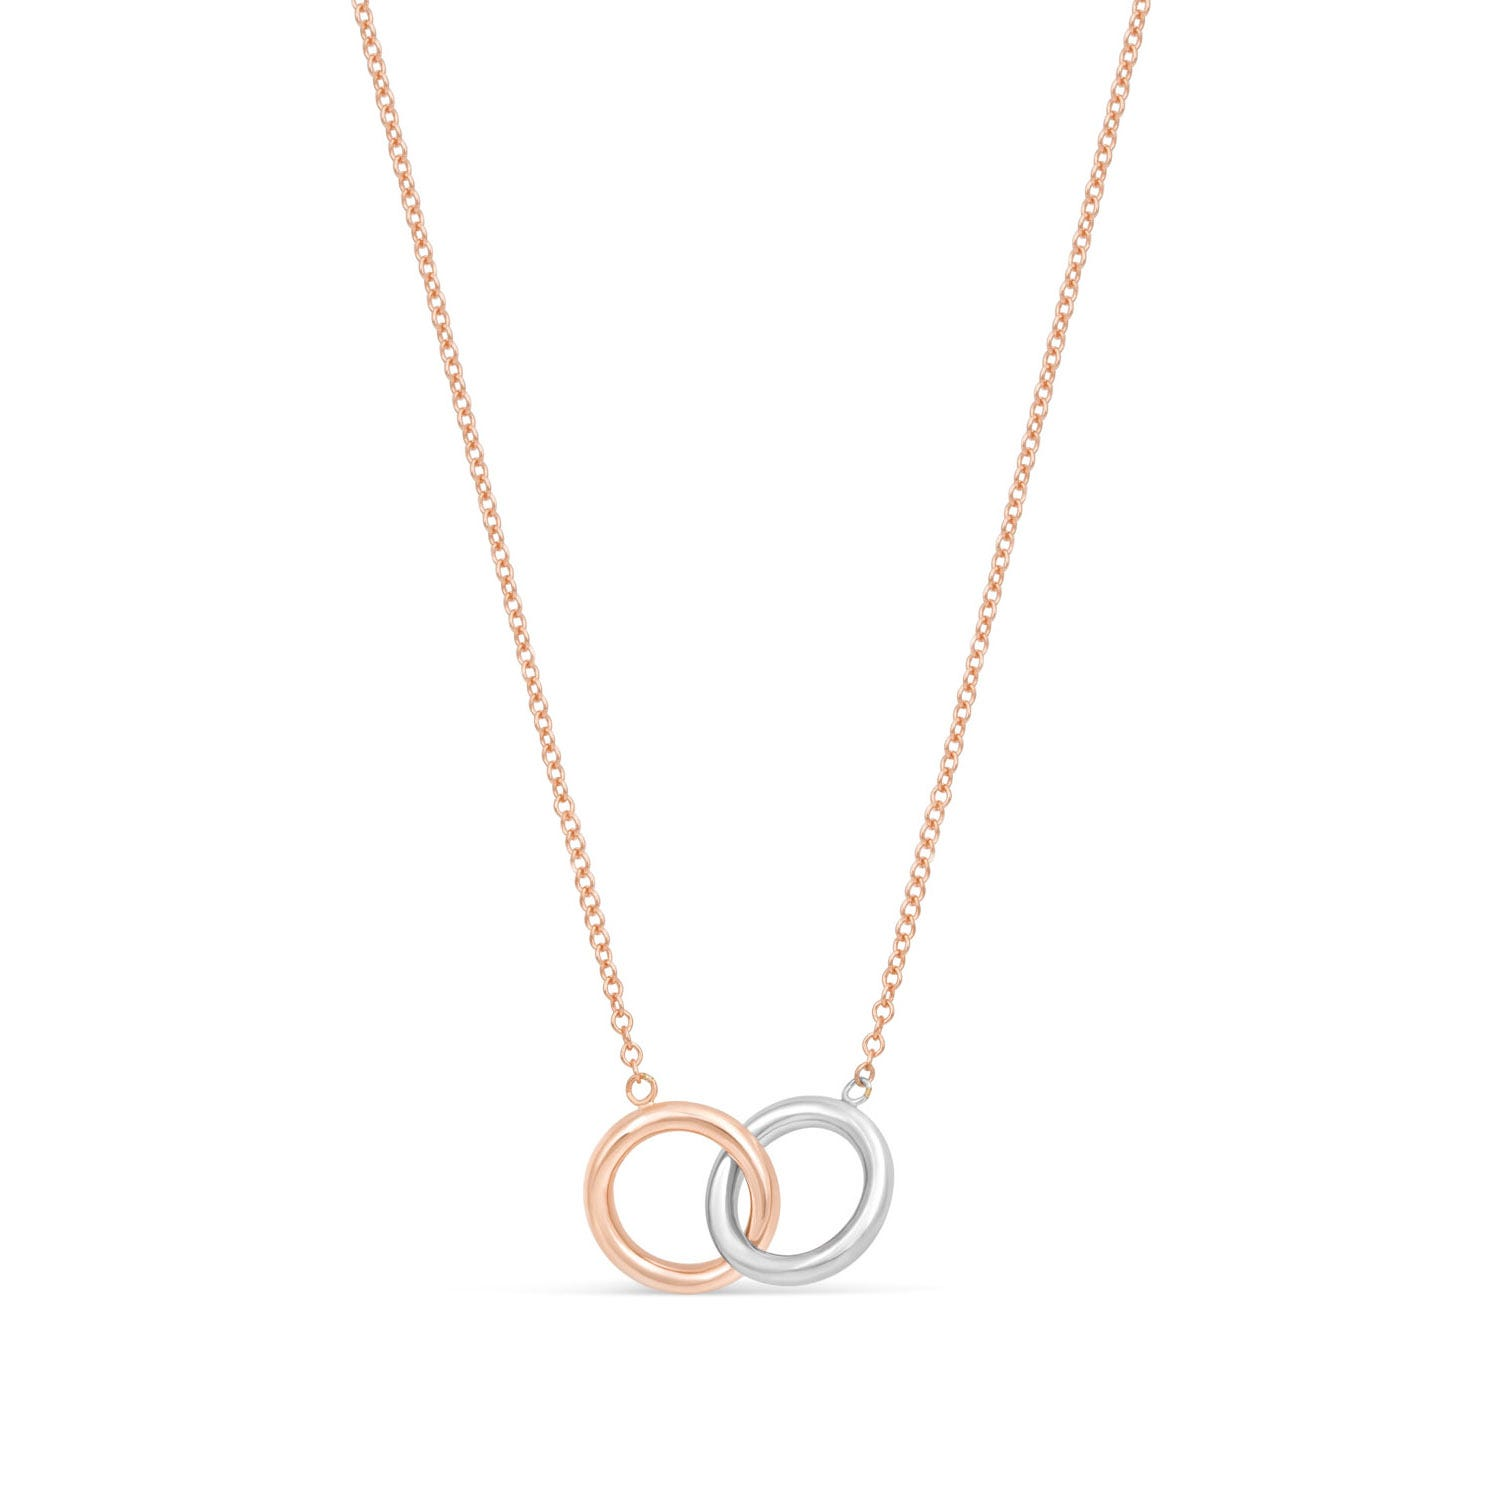 9ct Rose Gold & White Gold Double Circle Necklet